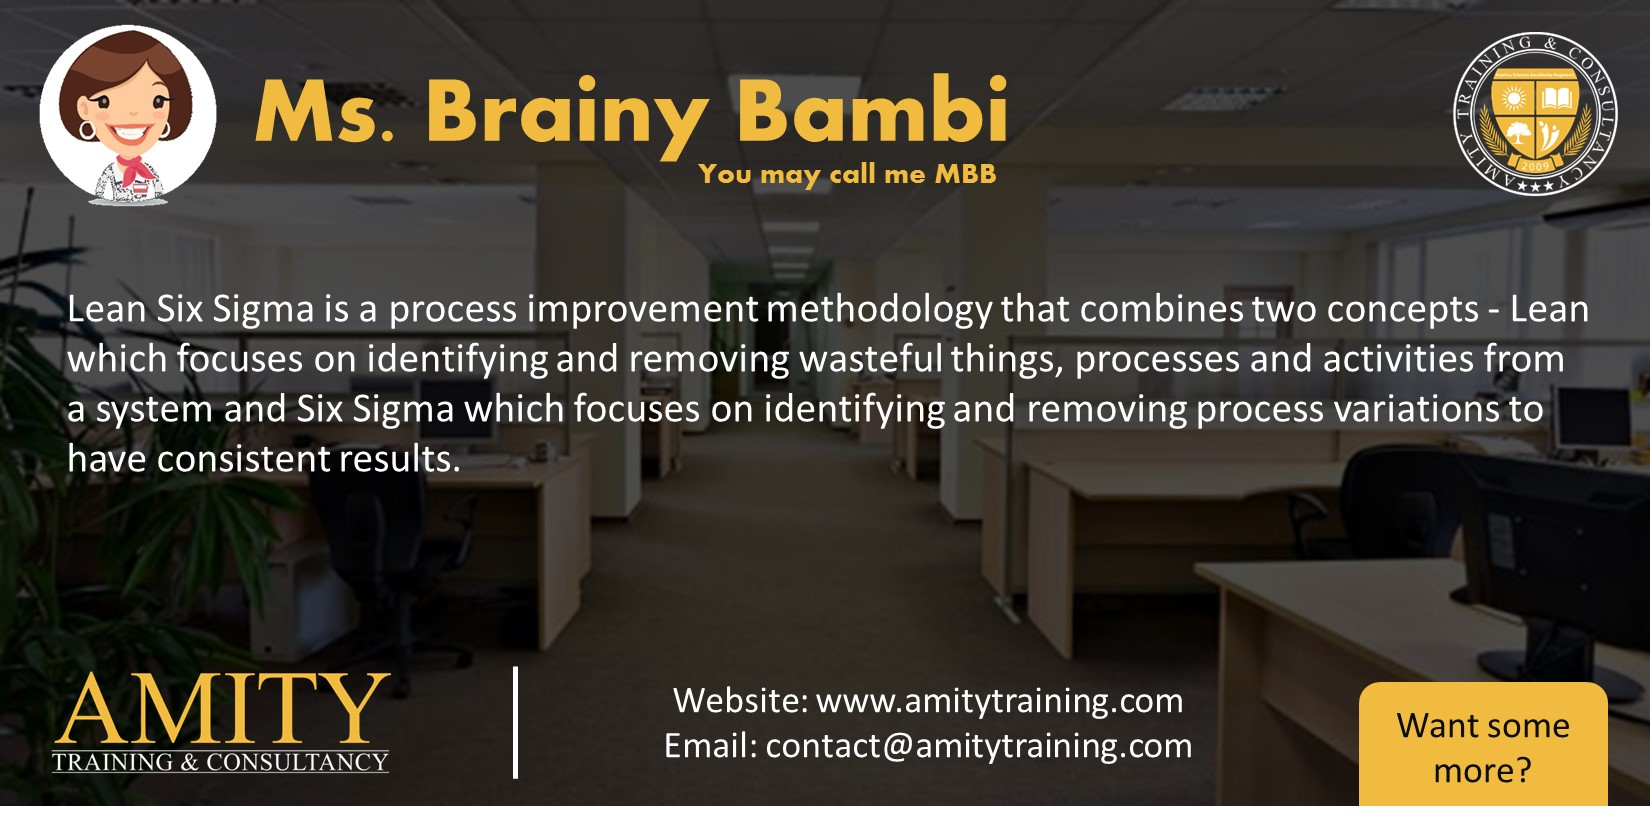 ms brainy bambi Lean Six Sigma is a process improvement methodology that combines two concepts